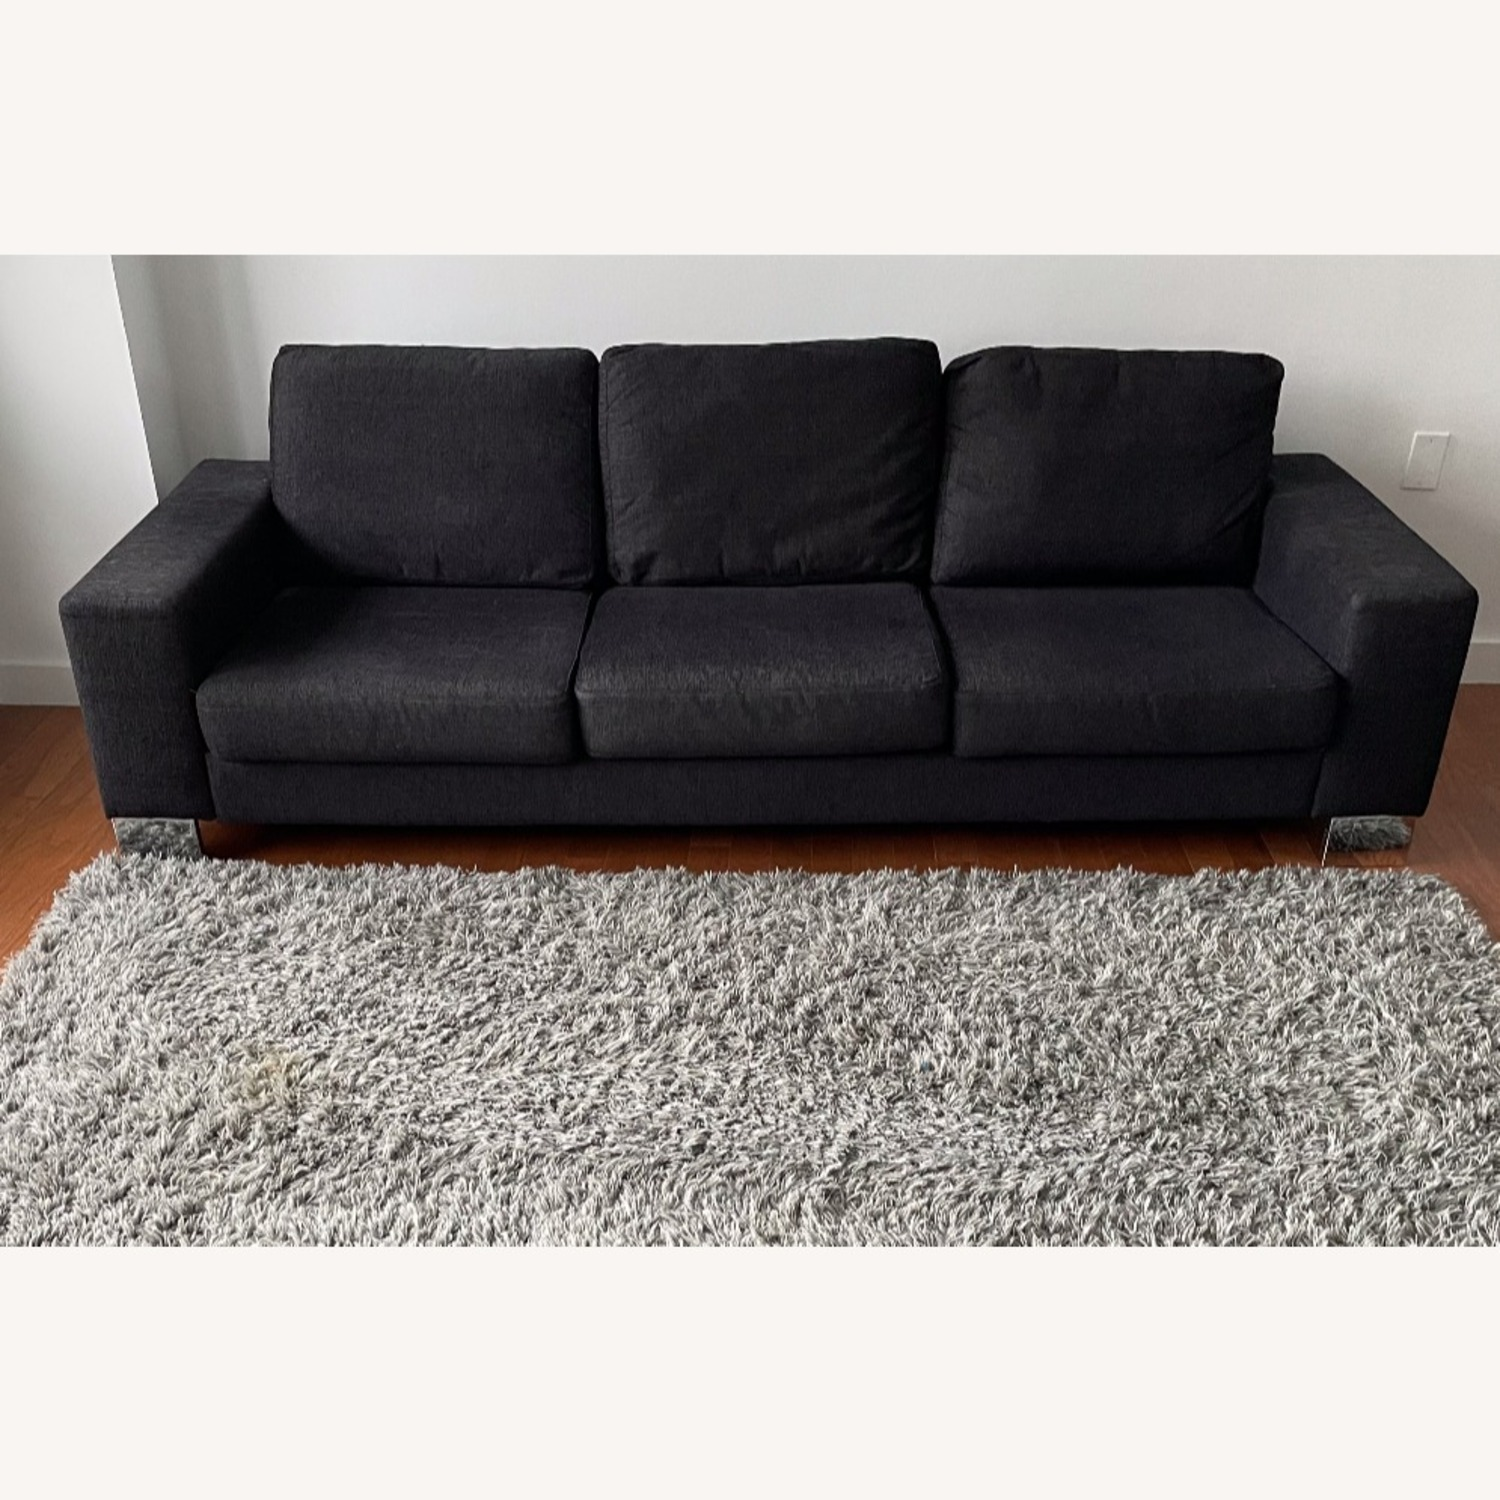 BoConcept 3-Seater Black Couch - image-8